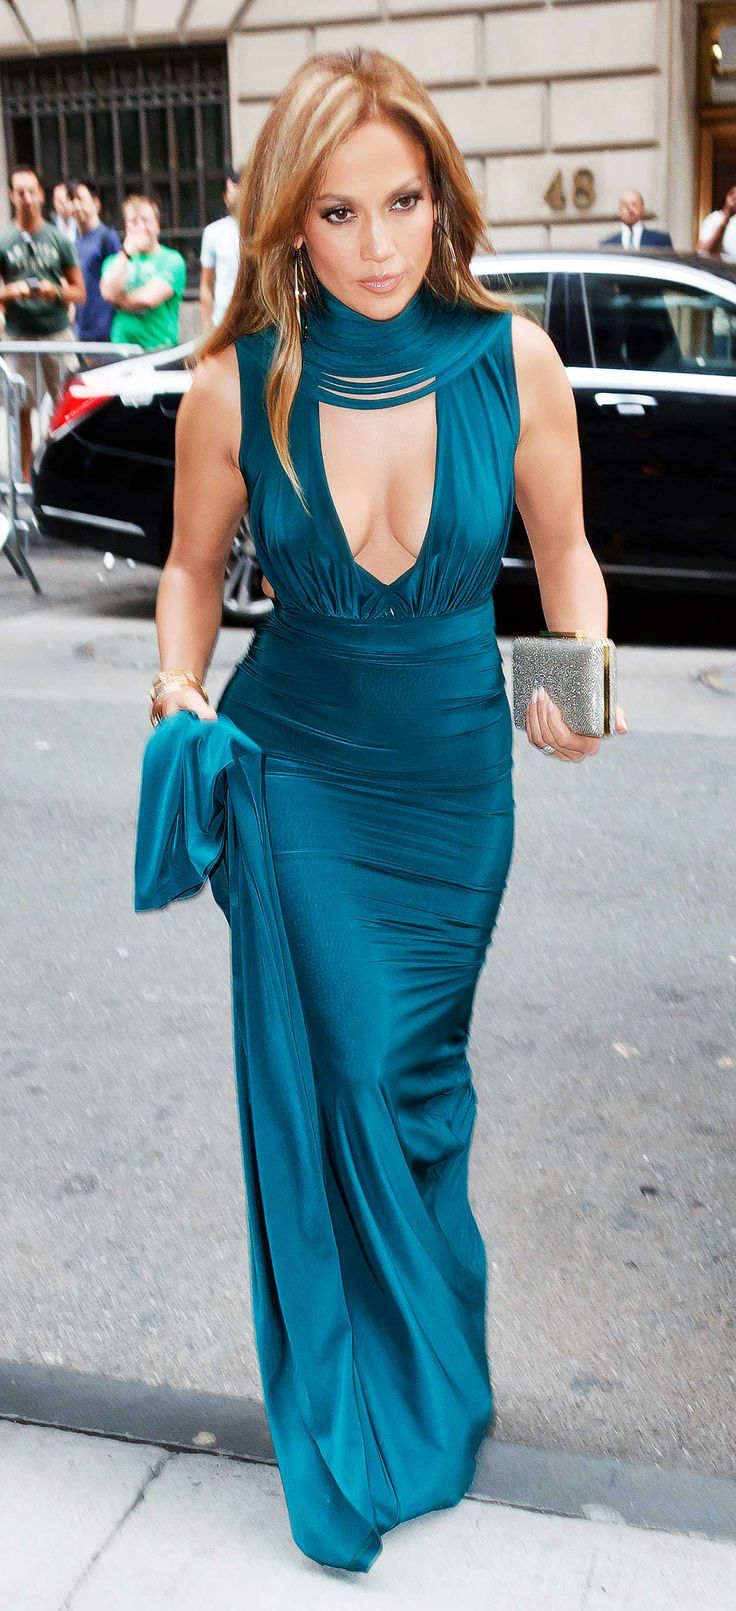 - J.Lo attended in all her teal (aka, something blue) glory, courtesy of Serbian design house Hamel.